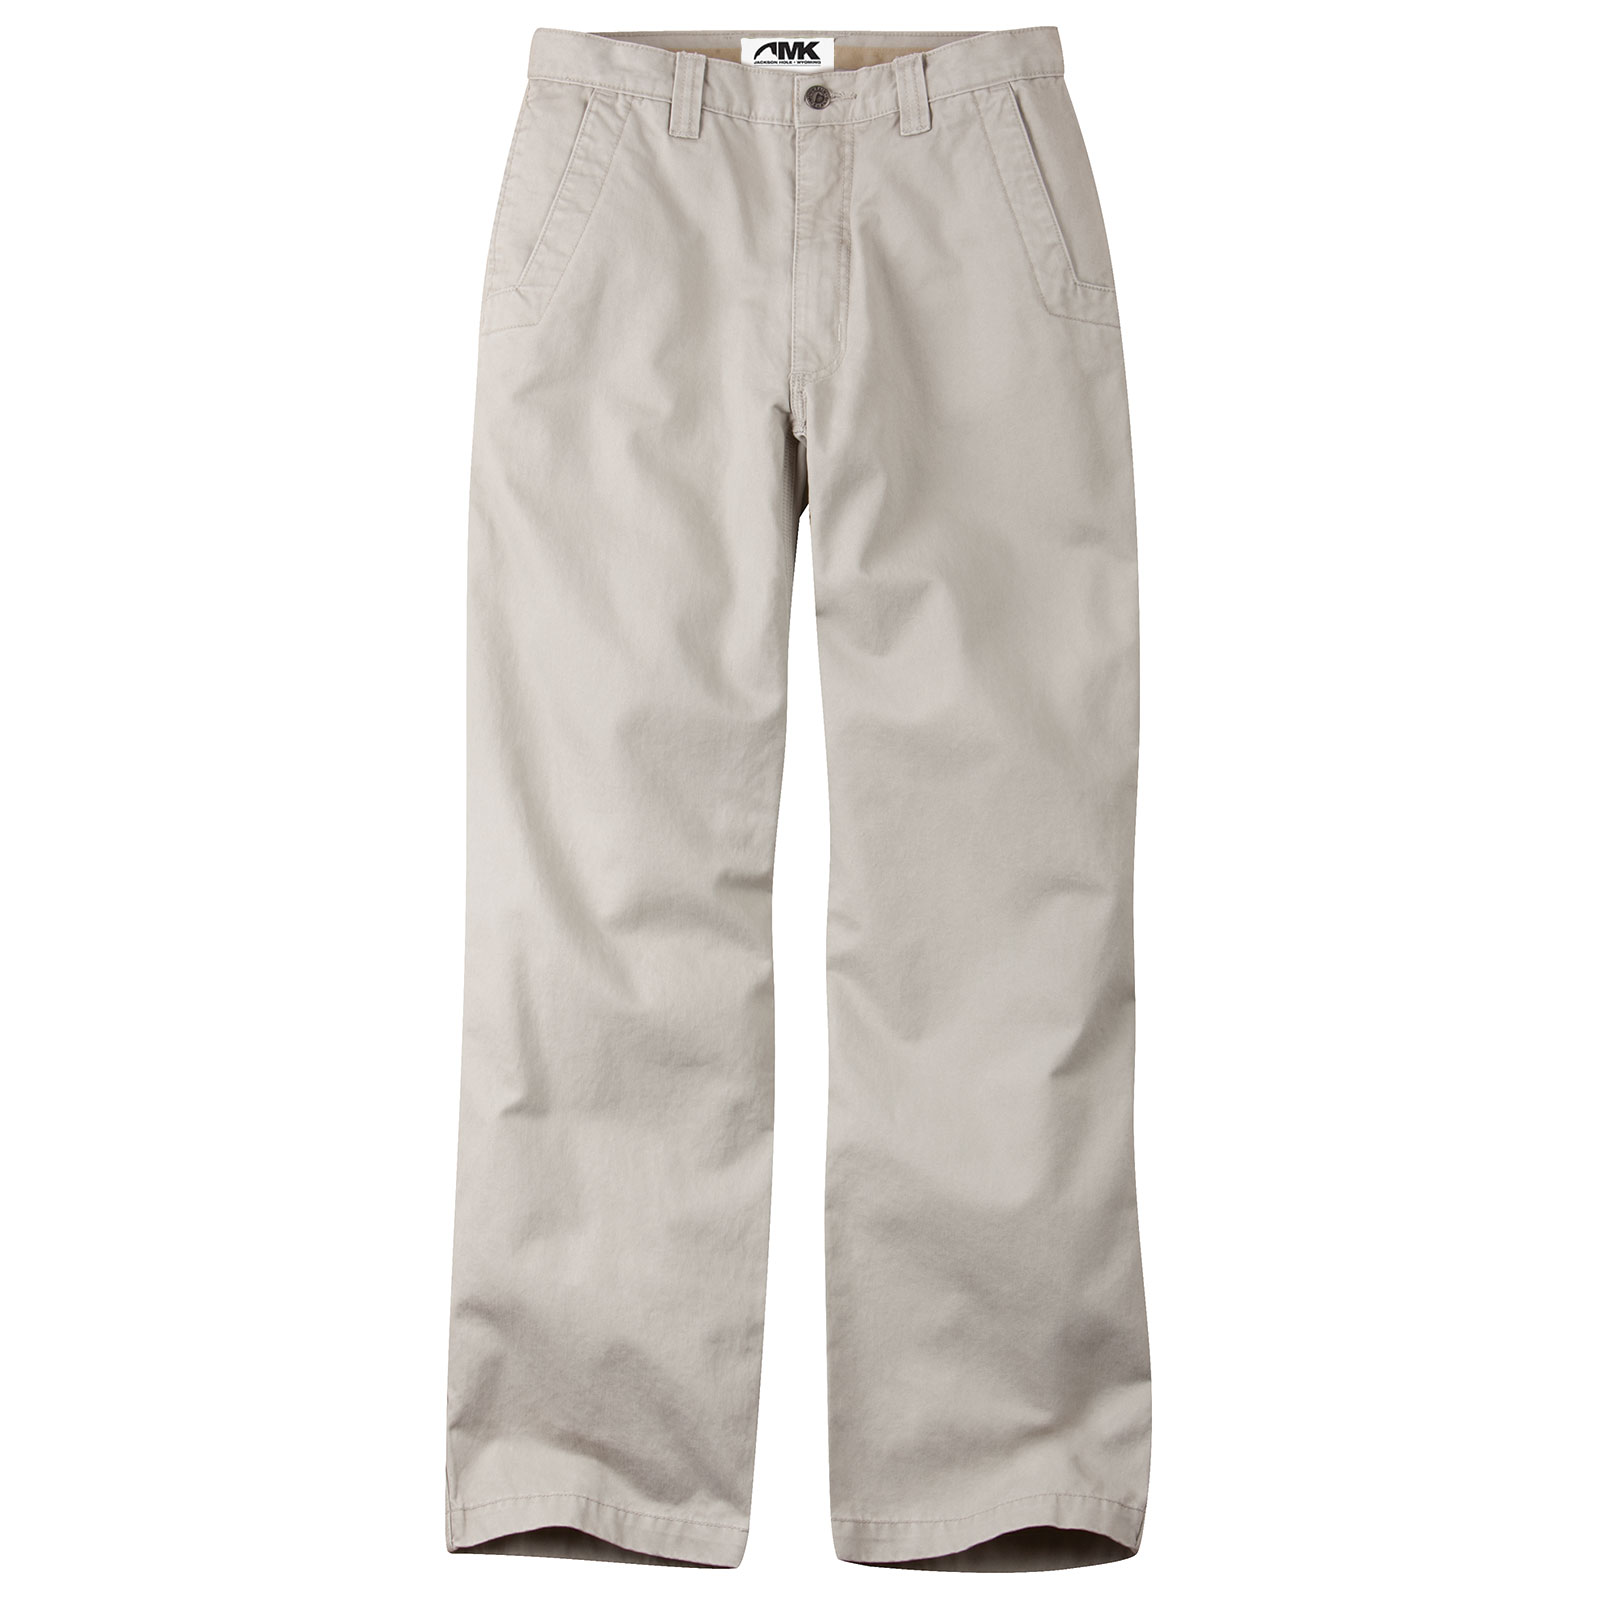 Mountain Khakis – Khaki Pants & Outdoor Clothing Built for the ...